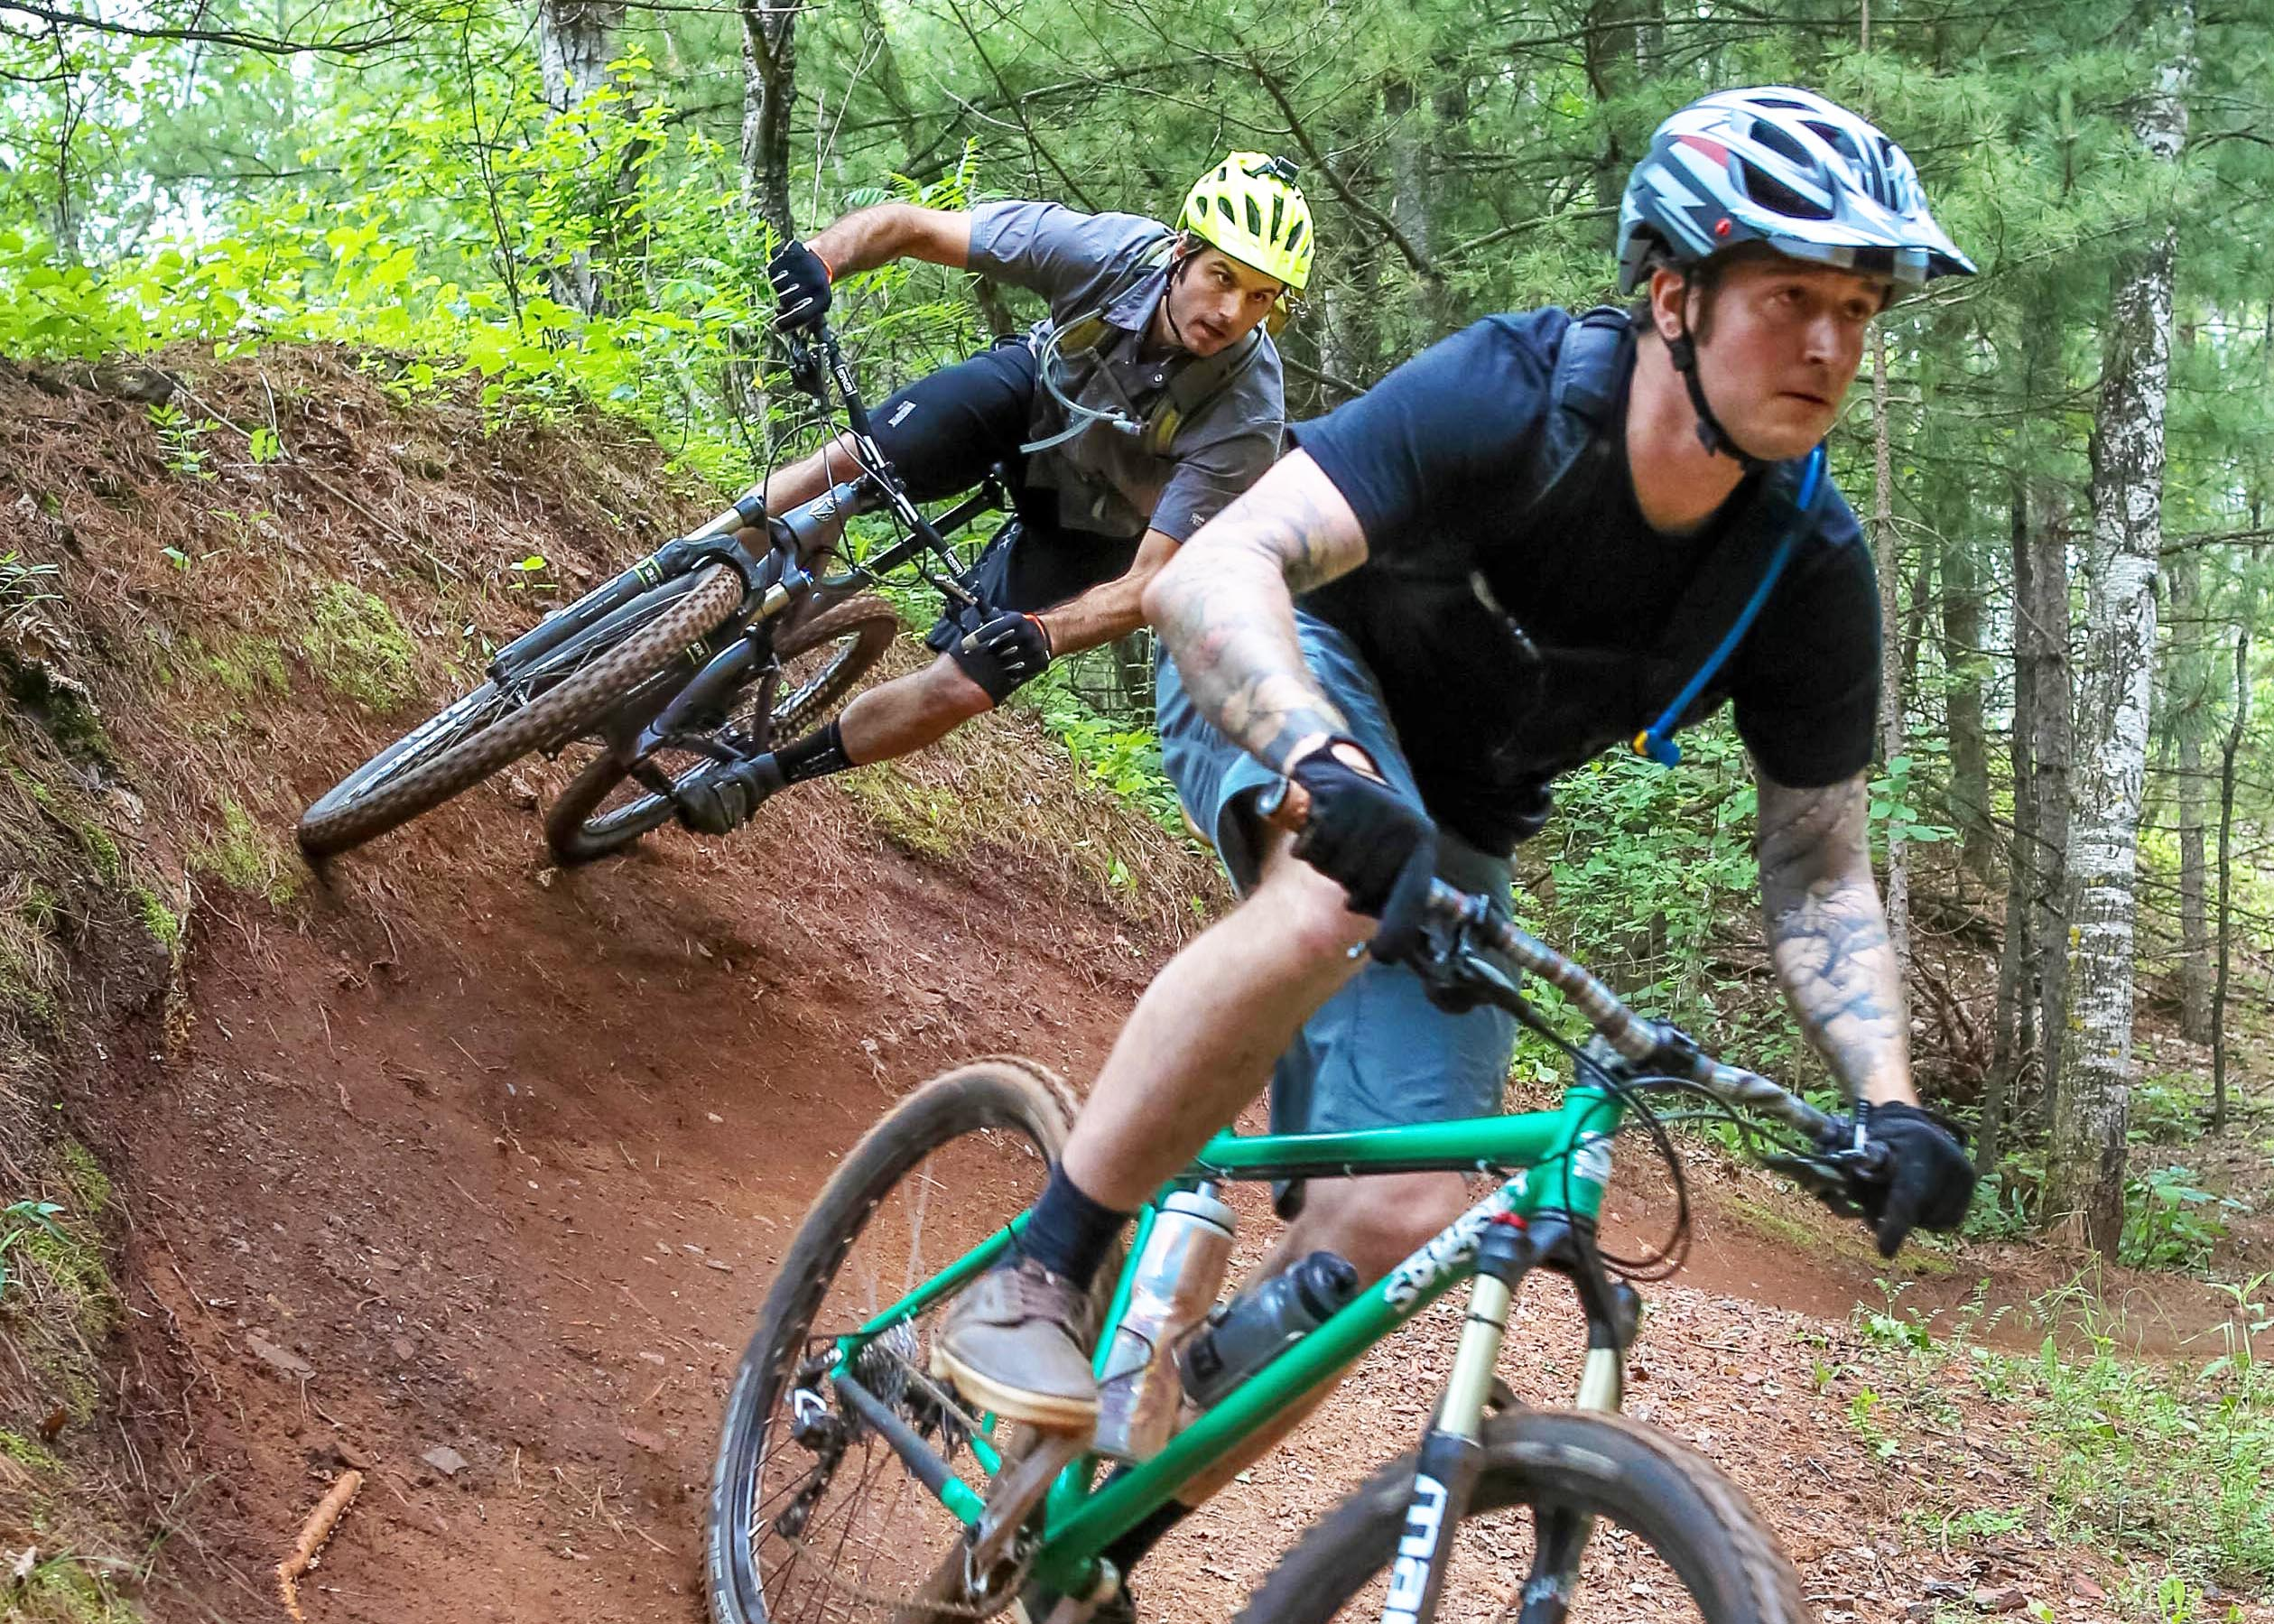 In 2008, QBP makes a key contribution in conjunction with IMBA to fund the construction of the Cuyuna Mountain Bike Trails. QBP employees participate in a letter writing campaign to gain support from their legislators and later assist in trail work.